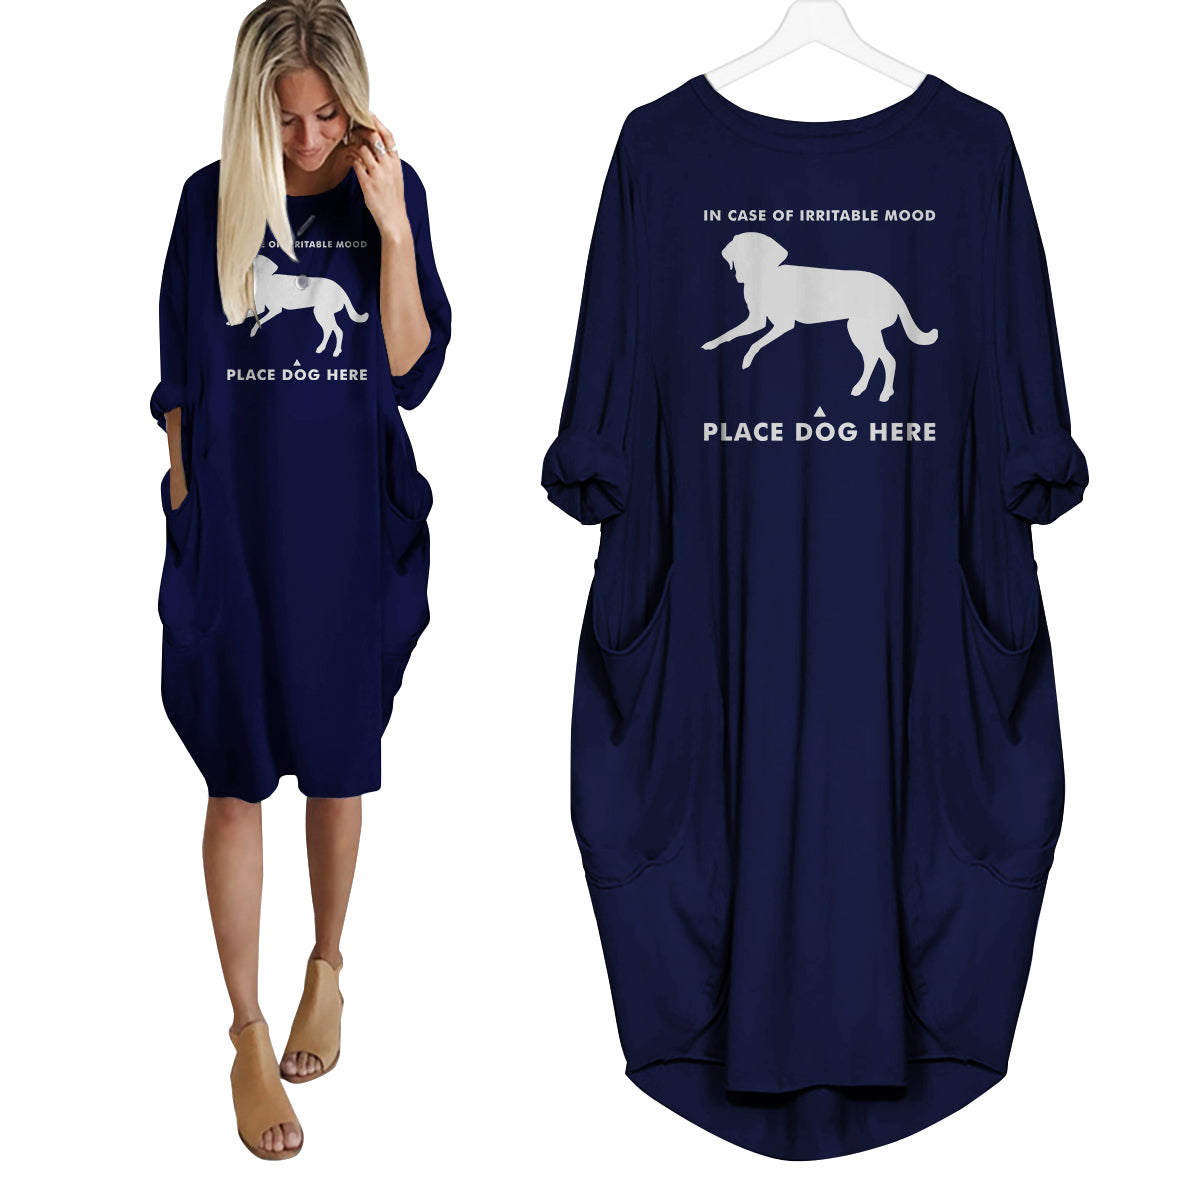 Place Dog Here Dress